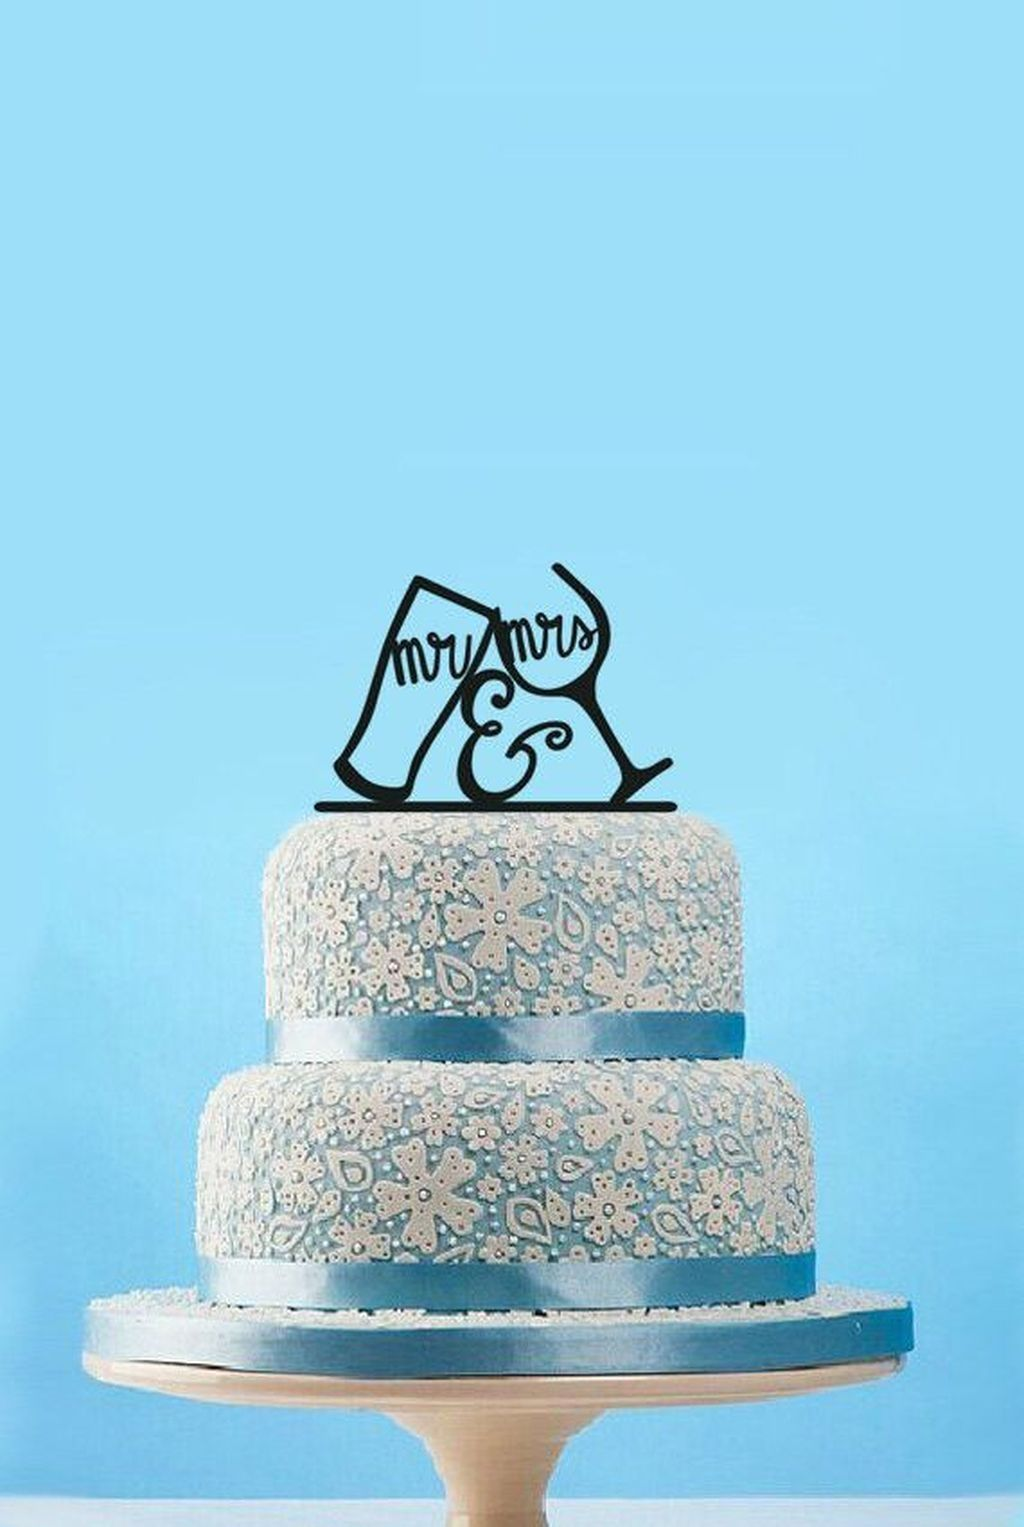 funny wedding cakes ideas for your special day